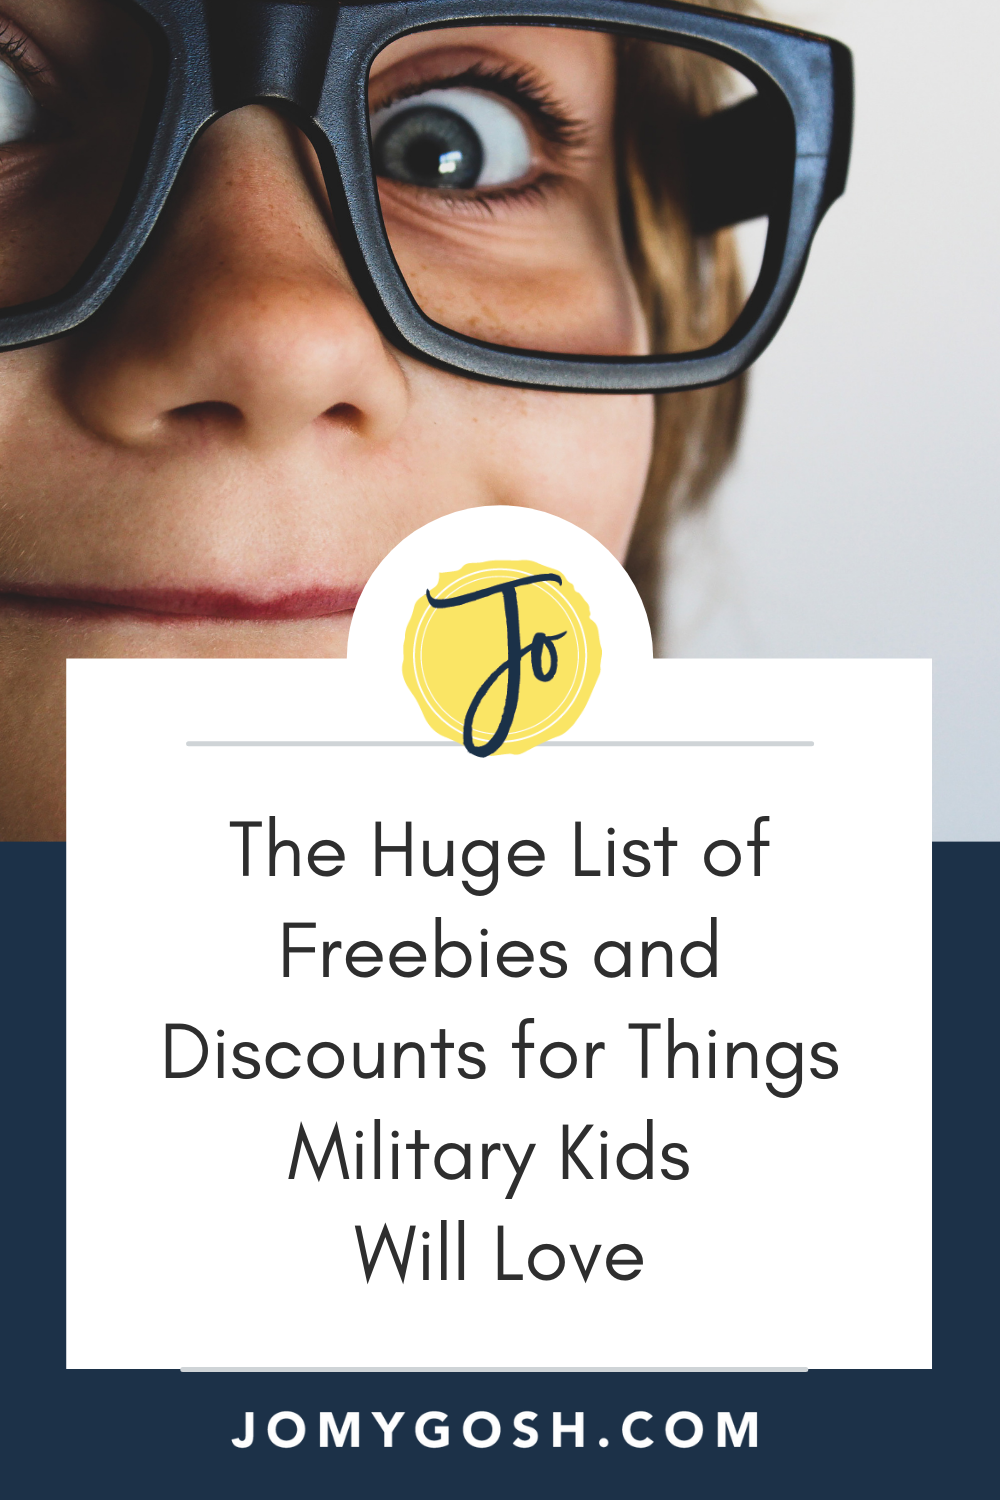 Save this post for all of the free and discounted military kid-related offers #military #militaryspouse #militarykid #milkid #milspouse #milso #milsos #milspo #milspos #milfam #militaryfamily #discounts #freebies #freeoffers #militarydiscount